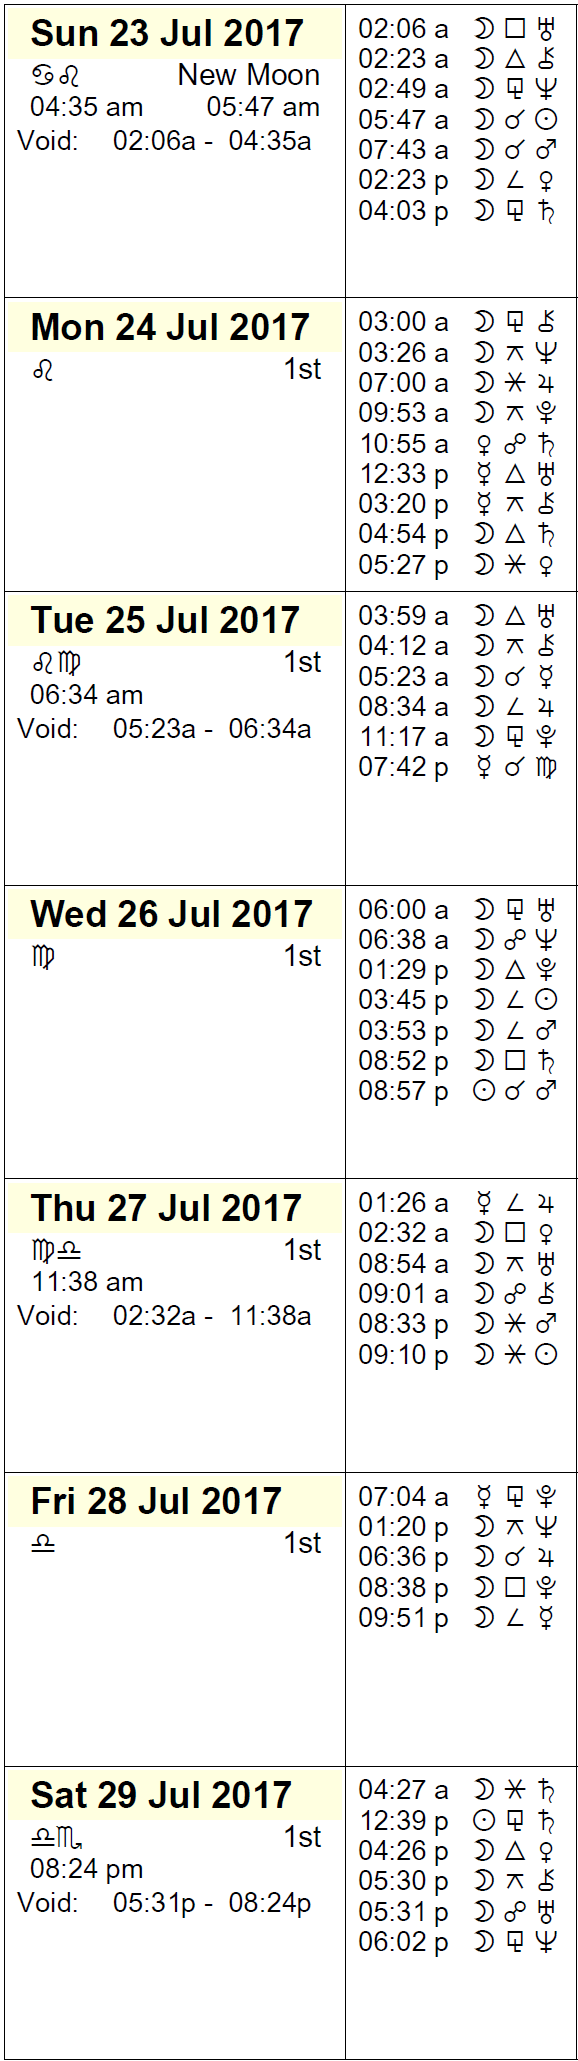 This Week in Astrology - July 23 to 29, 2017